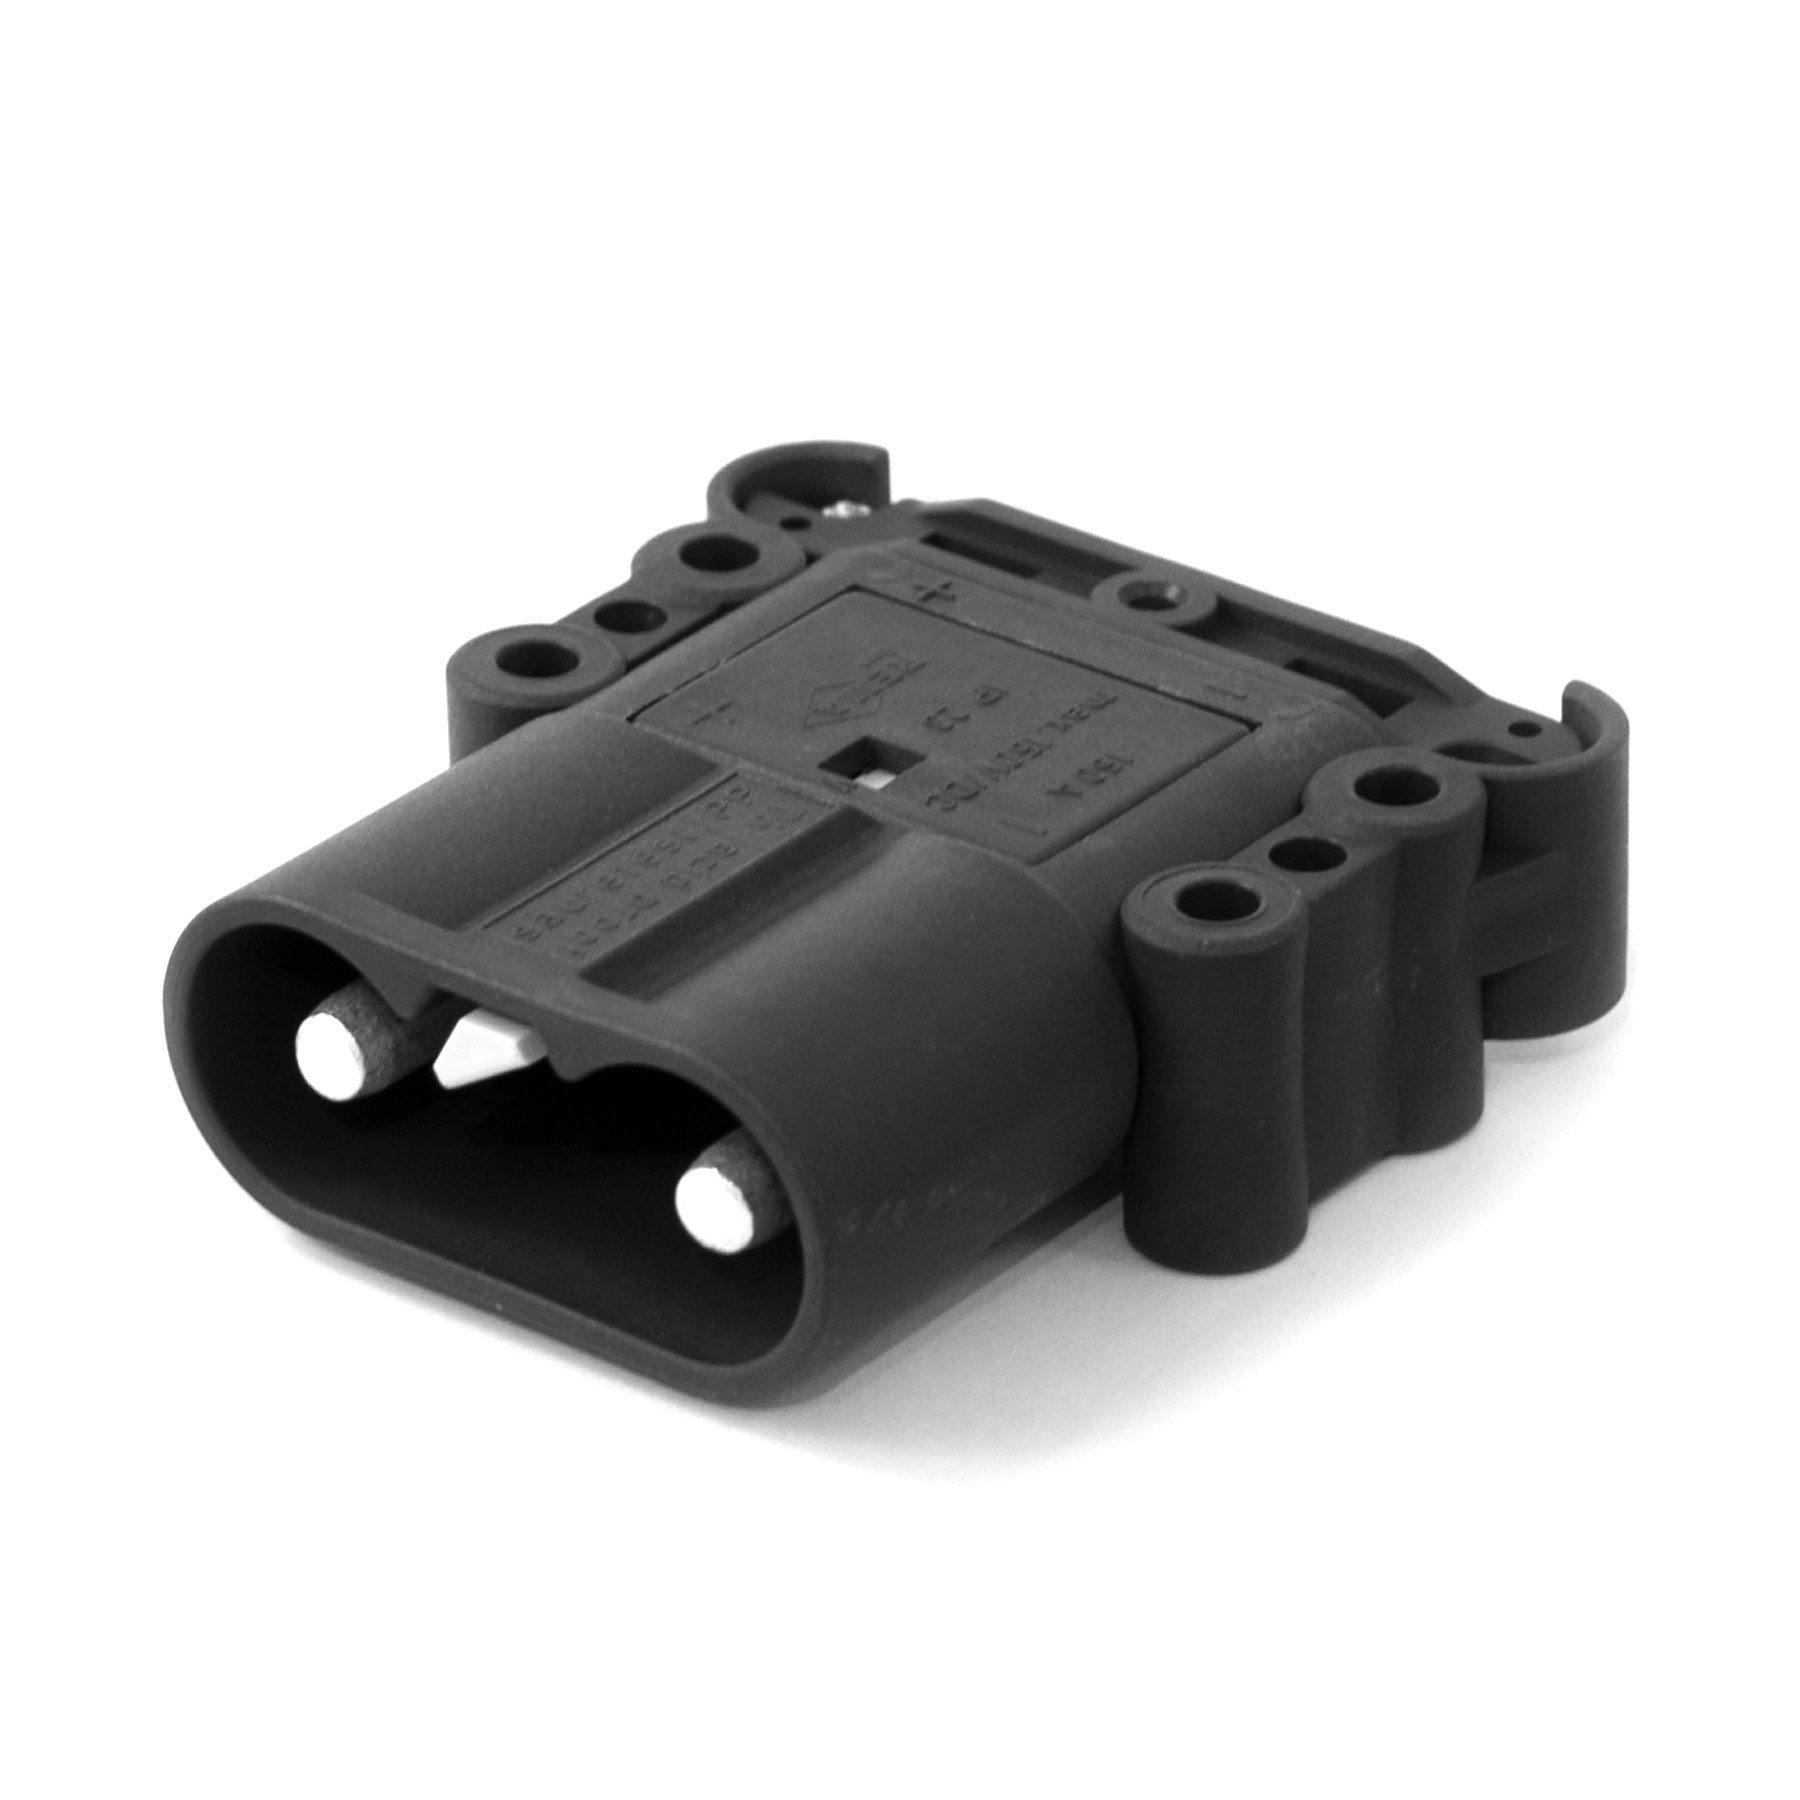 DIN 160A 150V Plug with 50 mm2 Main Contacts, Acid Resistant